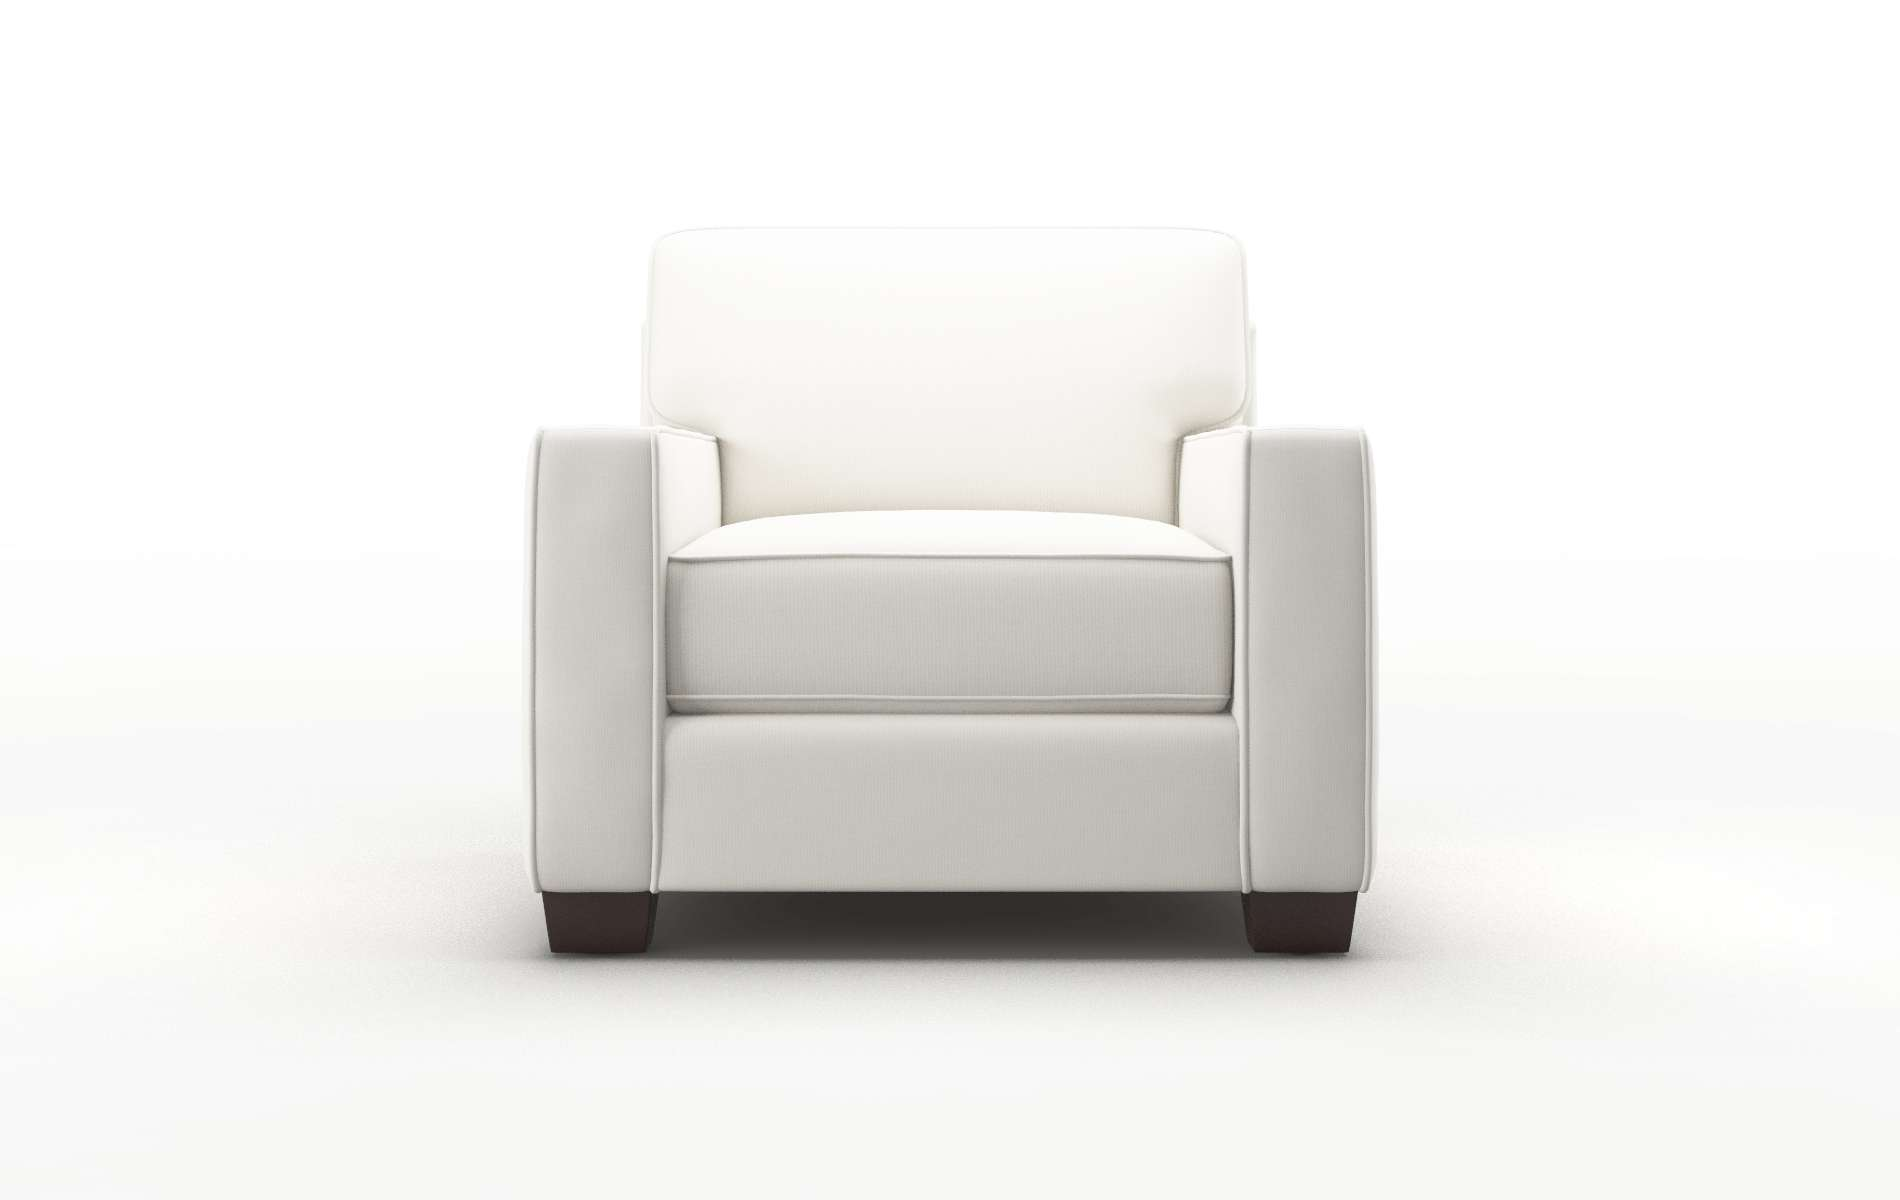 Chicago Keylargo Oatmeal chair espresso legs